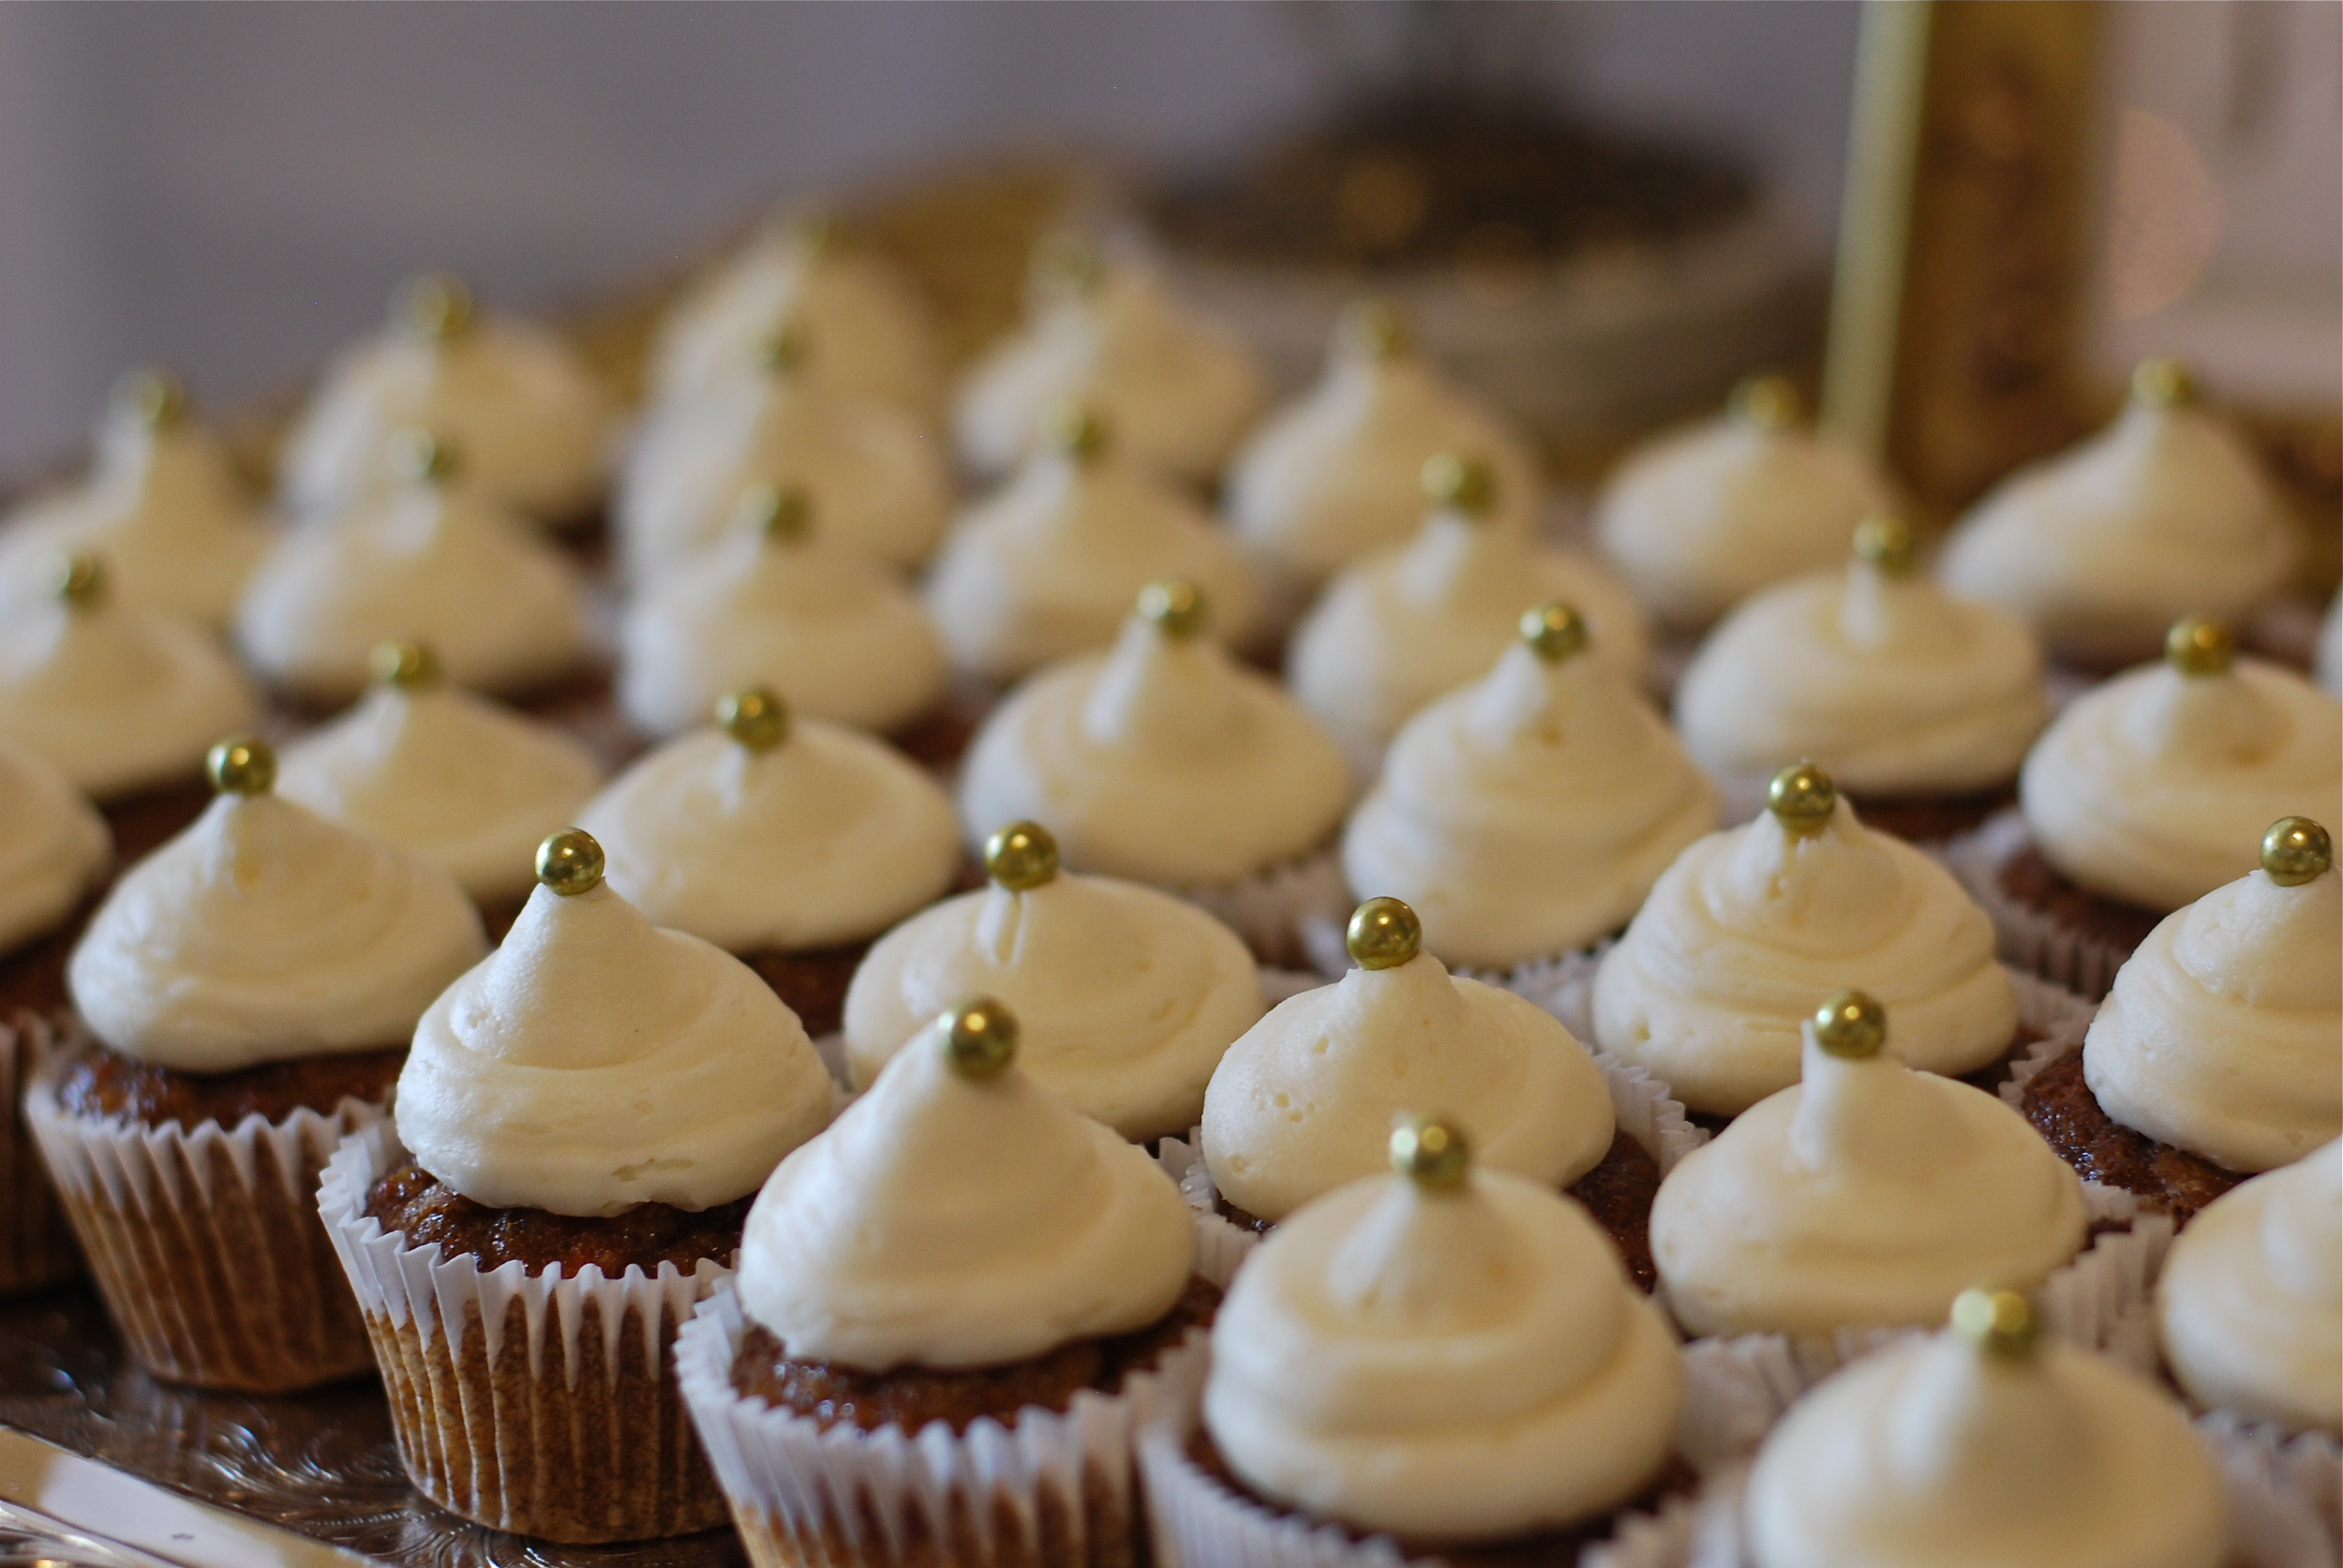 Carrot cake cupcakes with cream cheese frosting.  Who doesn't love to sample?!